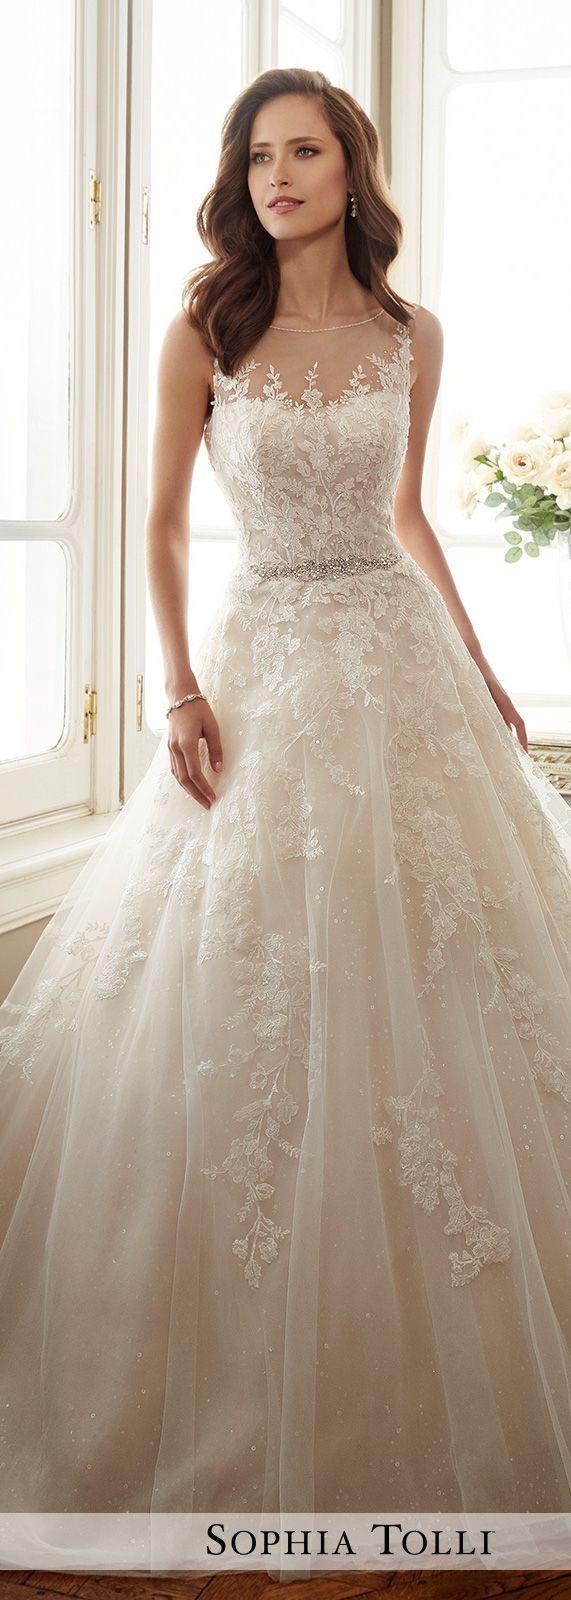 Wedding Dress by Sophia Tolli Spring 2017 Bridal Collection | Style No. » Y11719 Monte